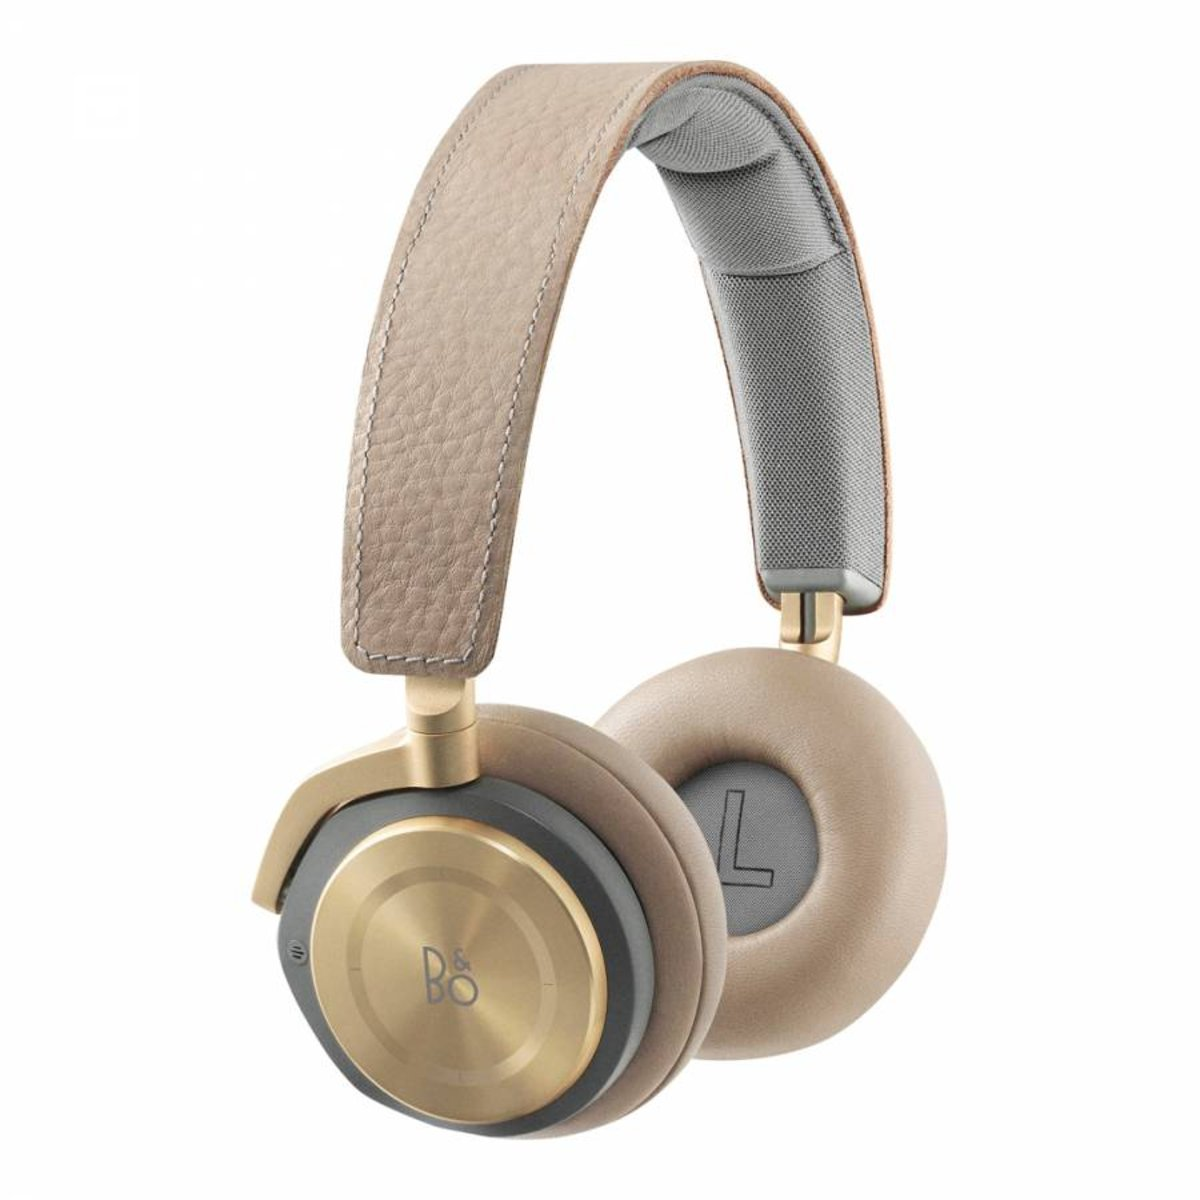 BeoPlay H8 WIRELESS OVER-EAR HEADPHONES Argilla bright HK Geniue